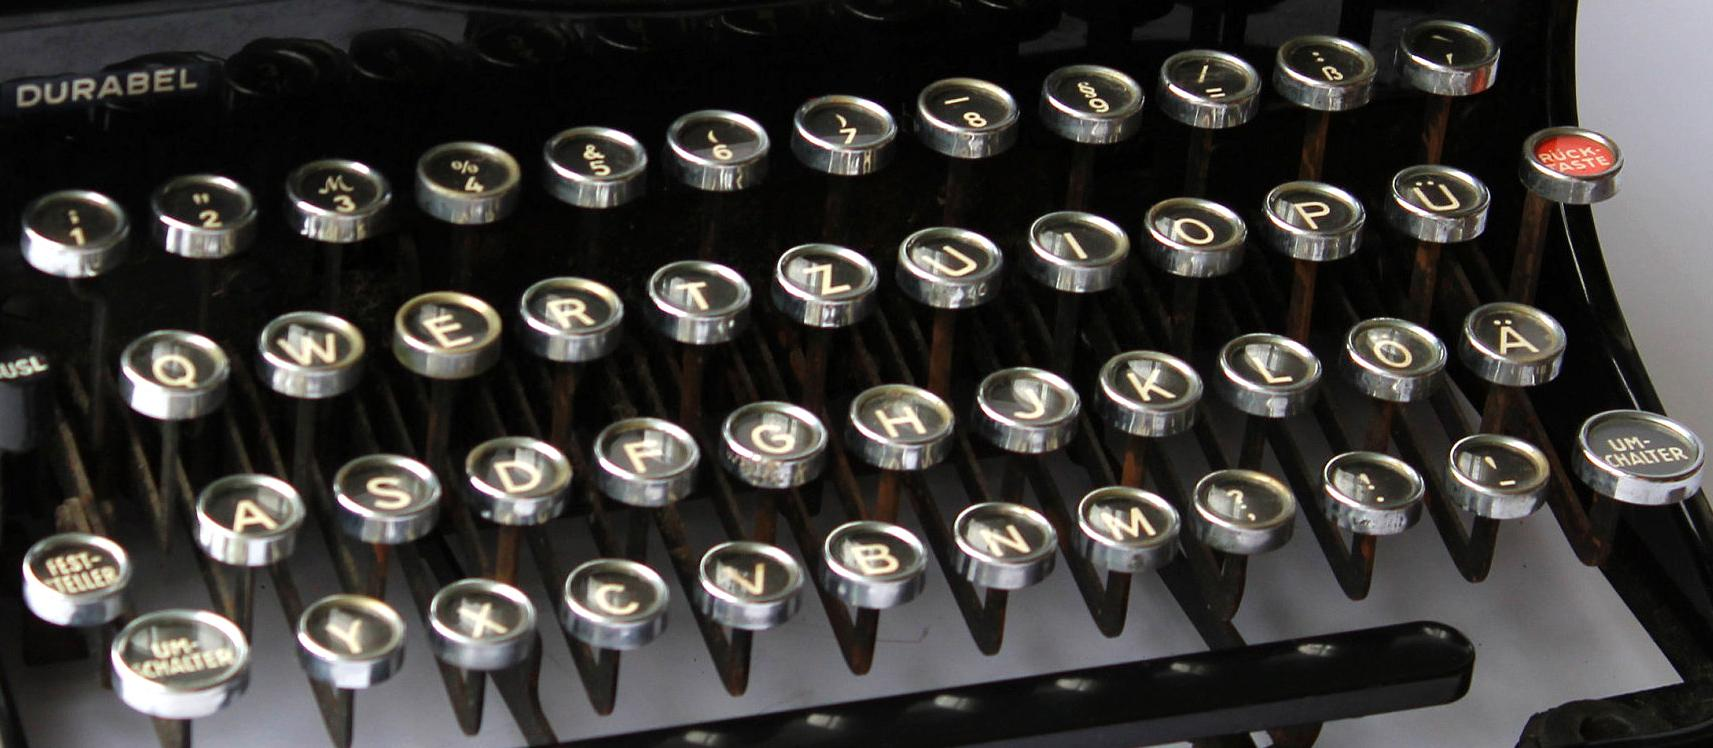 Early typewriter keyboards were part of the evolution of UI design.